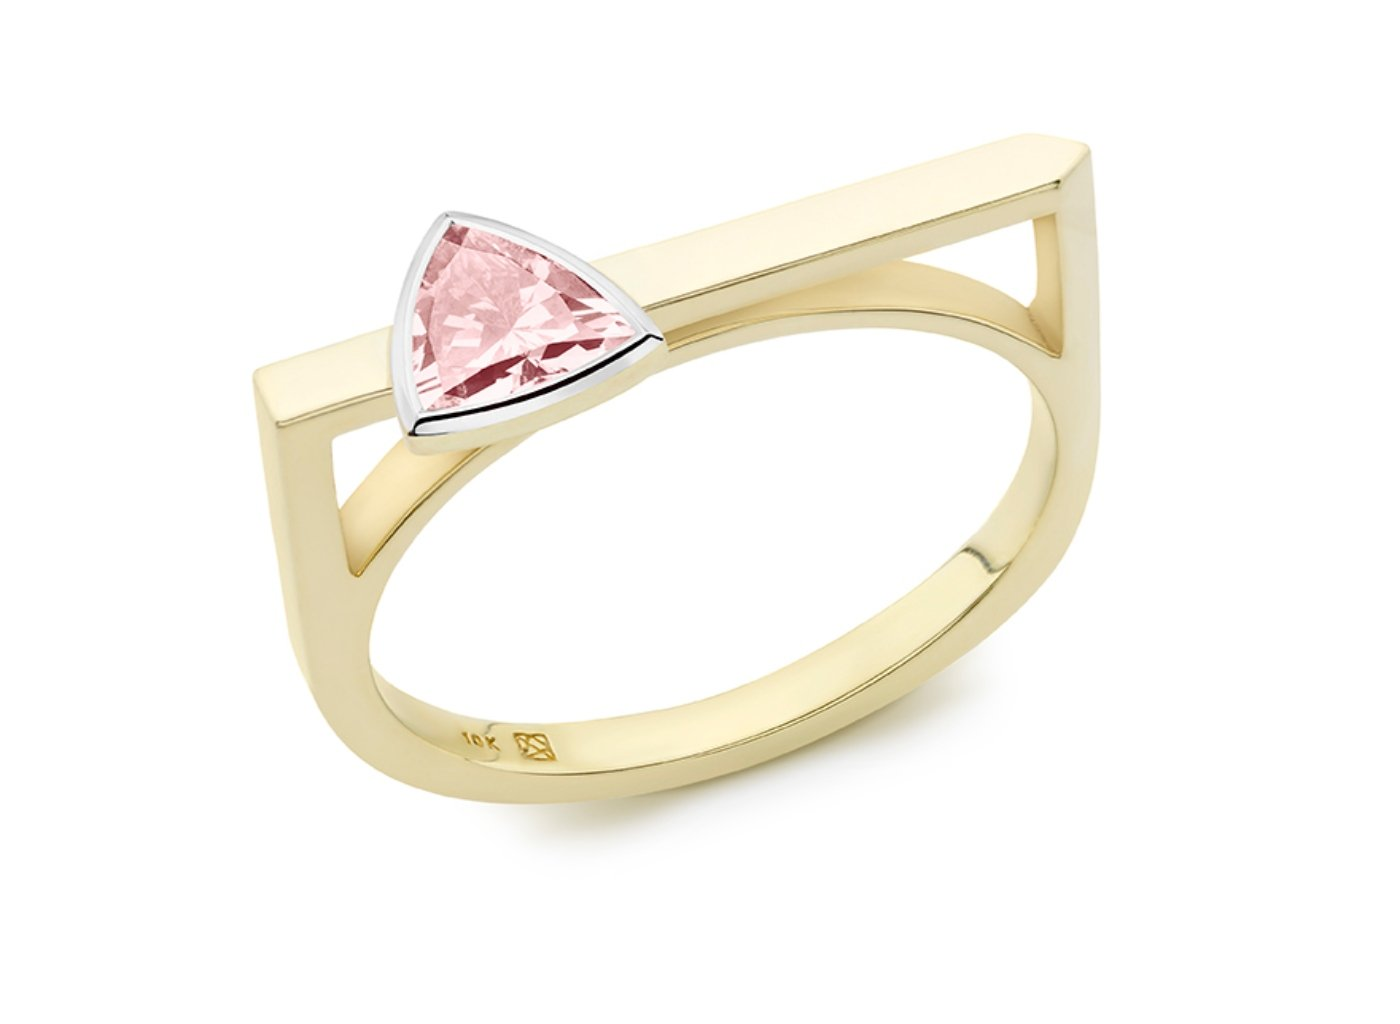 Side view of Trillion linear 3/8 carat ring with pink diamond